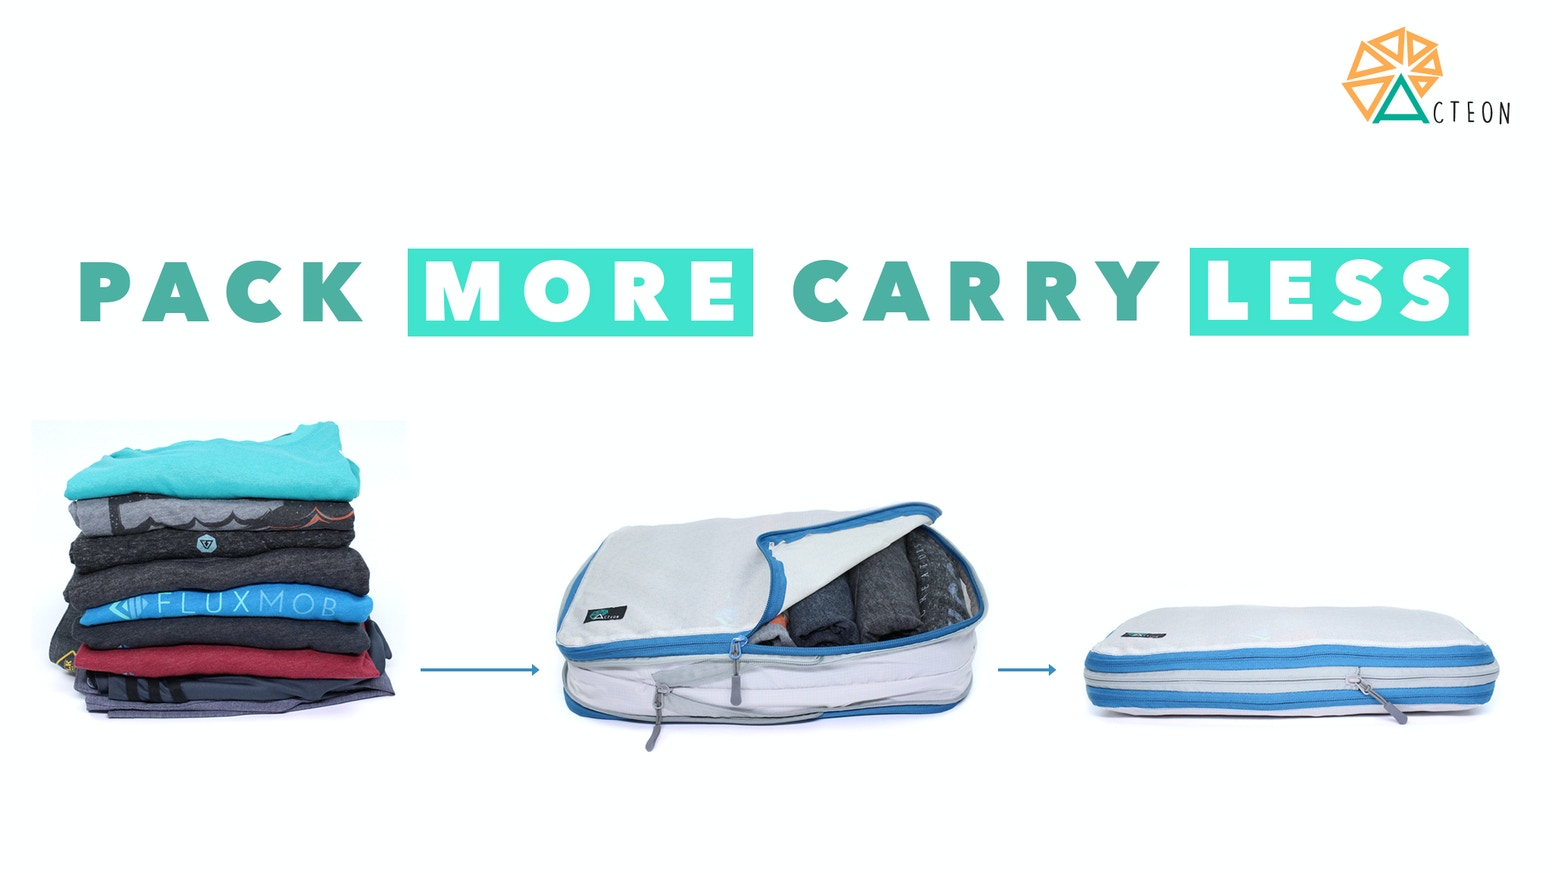 Save space with two compartments to keep your clean and dirty clothes separated. Made with high quality ultra durable ripstop nylon.